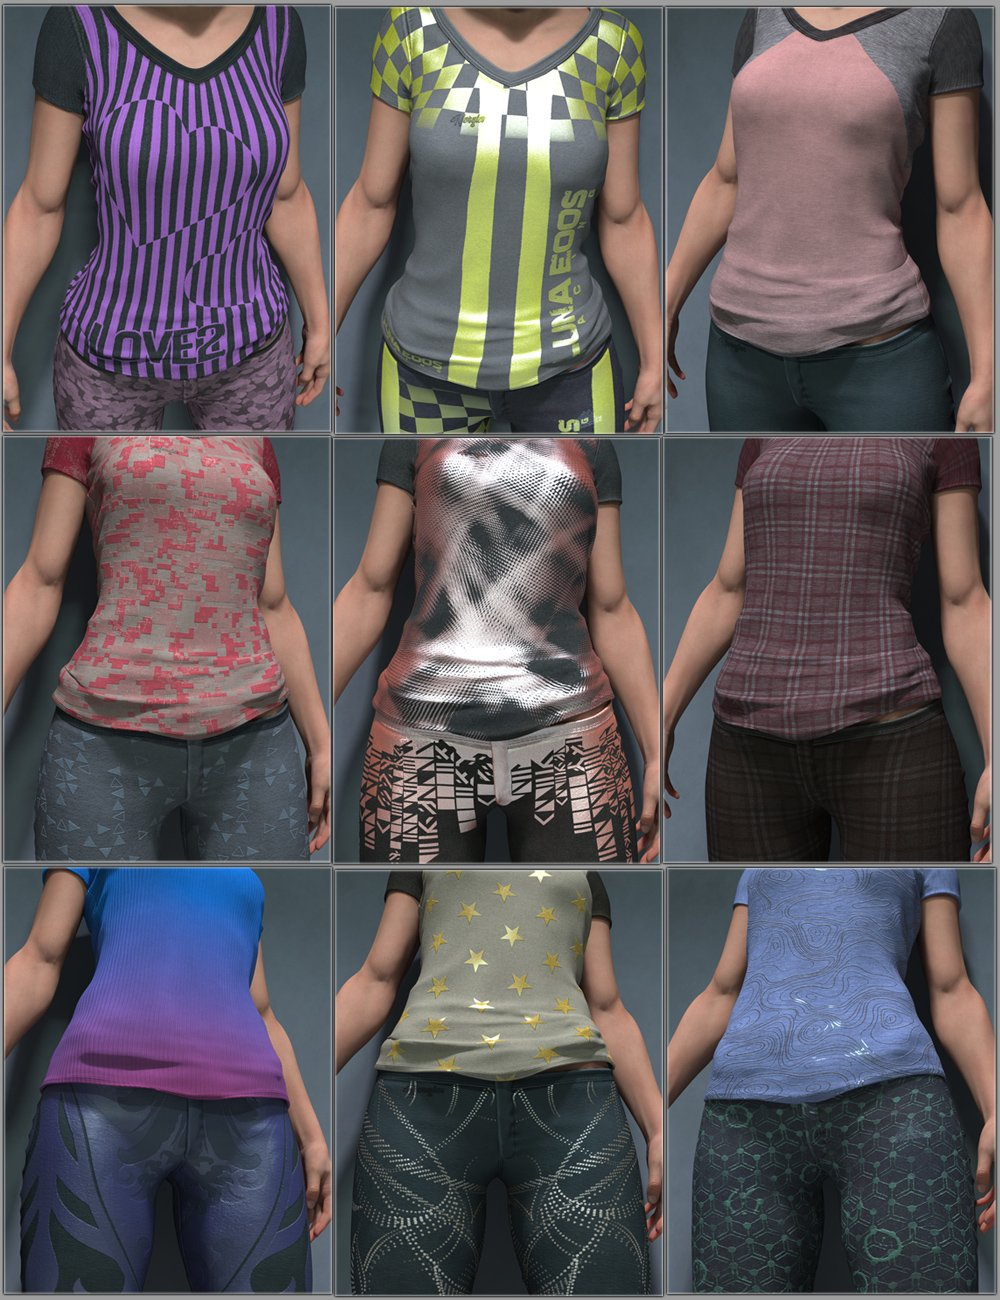 Customize vol 1 for Everyday 2 by: Aeon Soul, 3D Models by Daz 3D